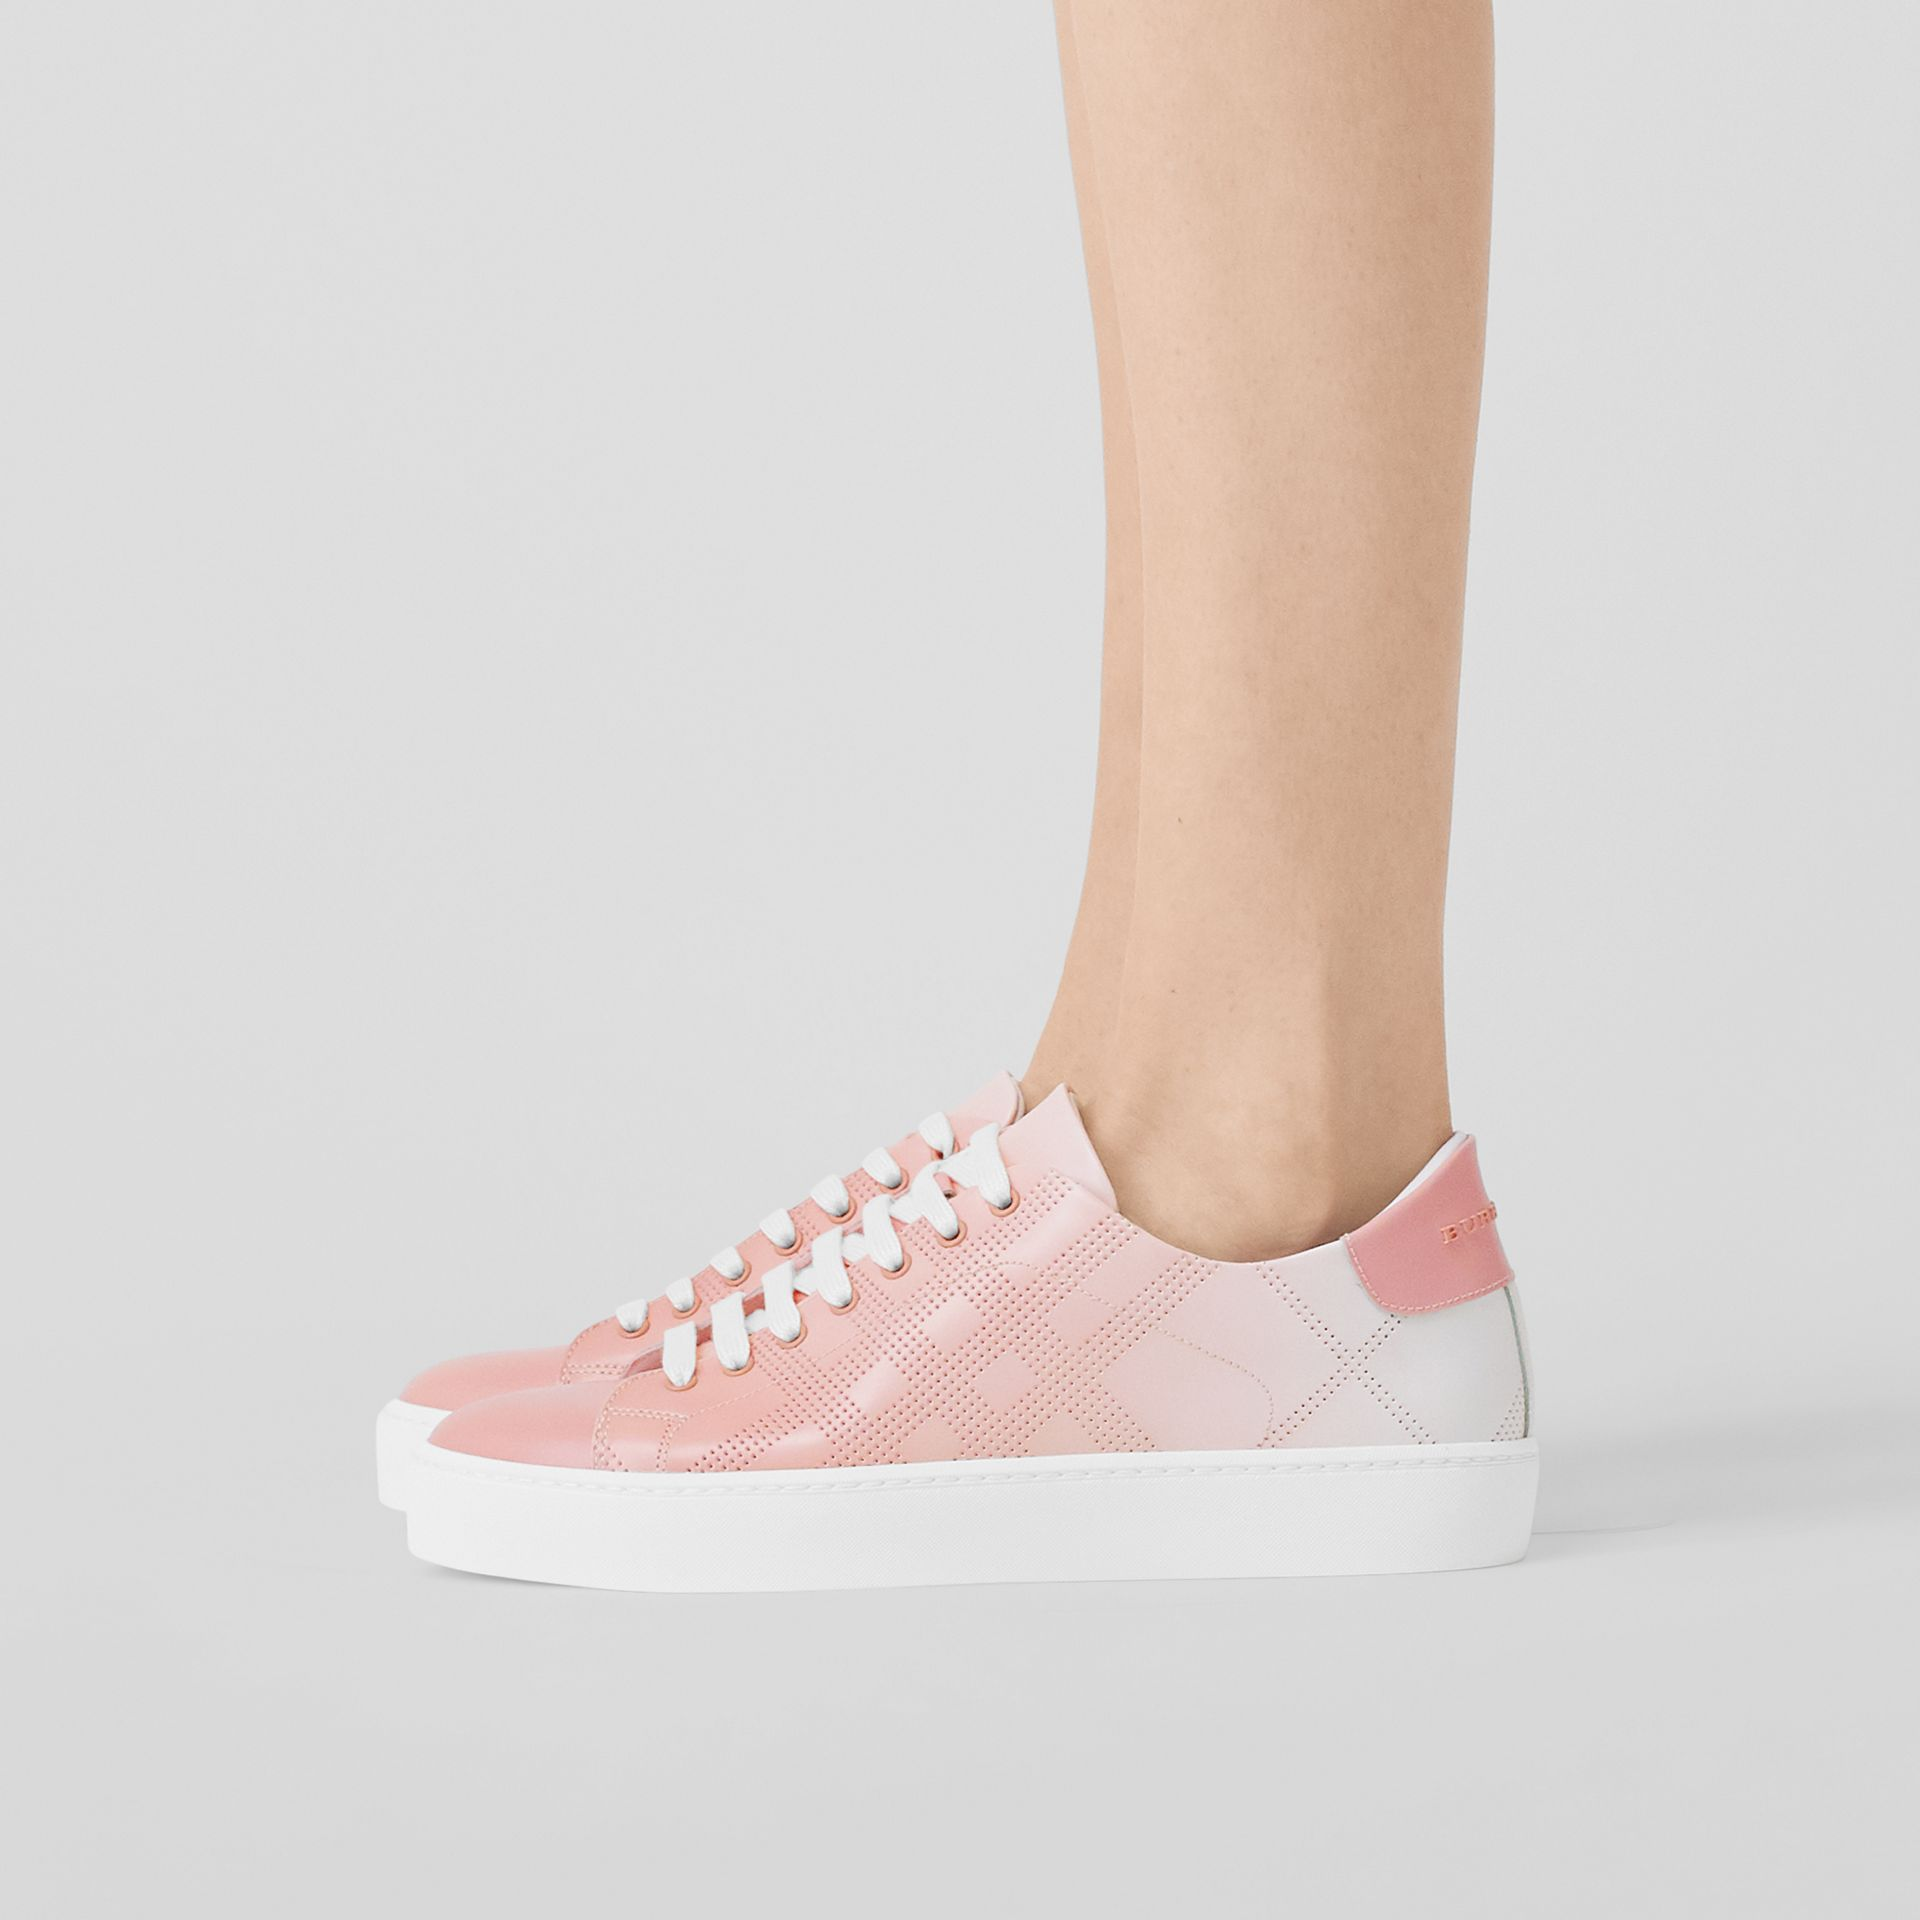 Perforated Check Dégradé Leather Sneakers in Sugar Pink - Women | Burberry - gallery image 2